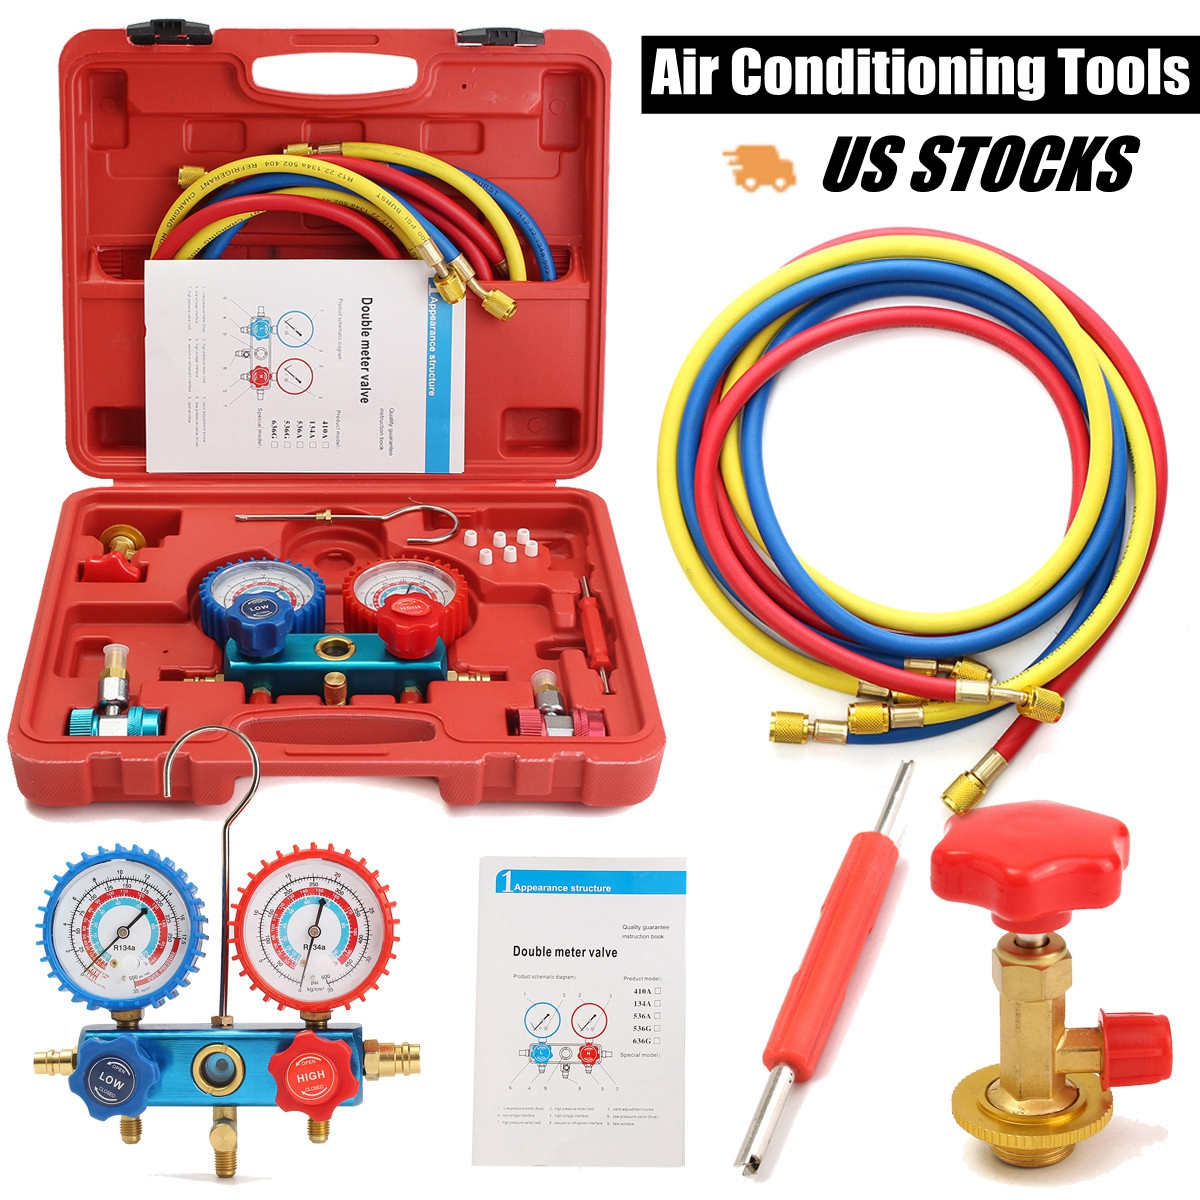 R134A HVAC A/C Refrigeration Kit <font><b>AC</b></font> Manifold Gauge Set Auto Service Kit Car Air Conditioning Repair Fluorine Filling <font><b>Tool</b></font> image